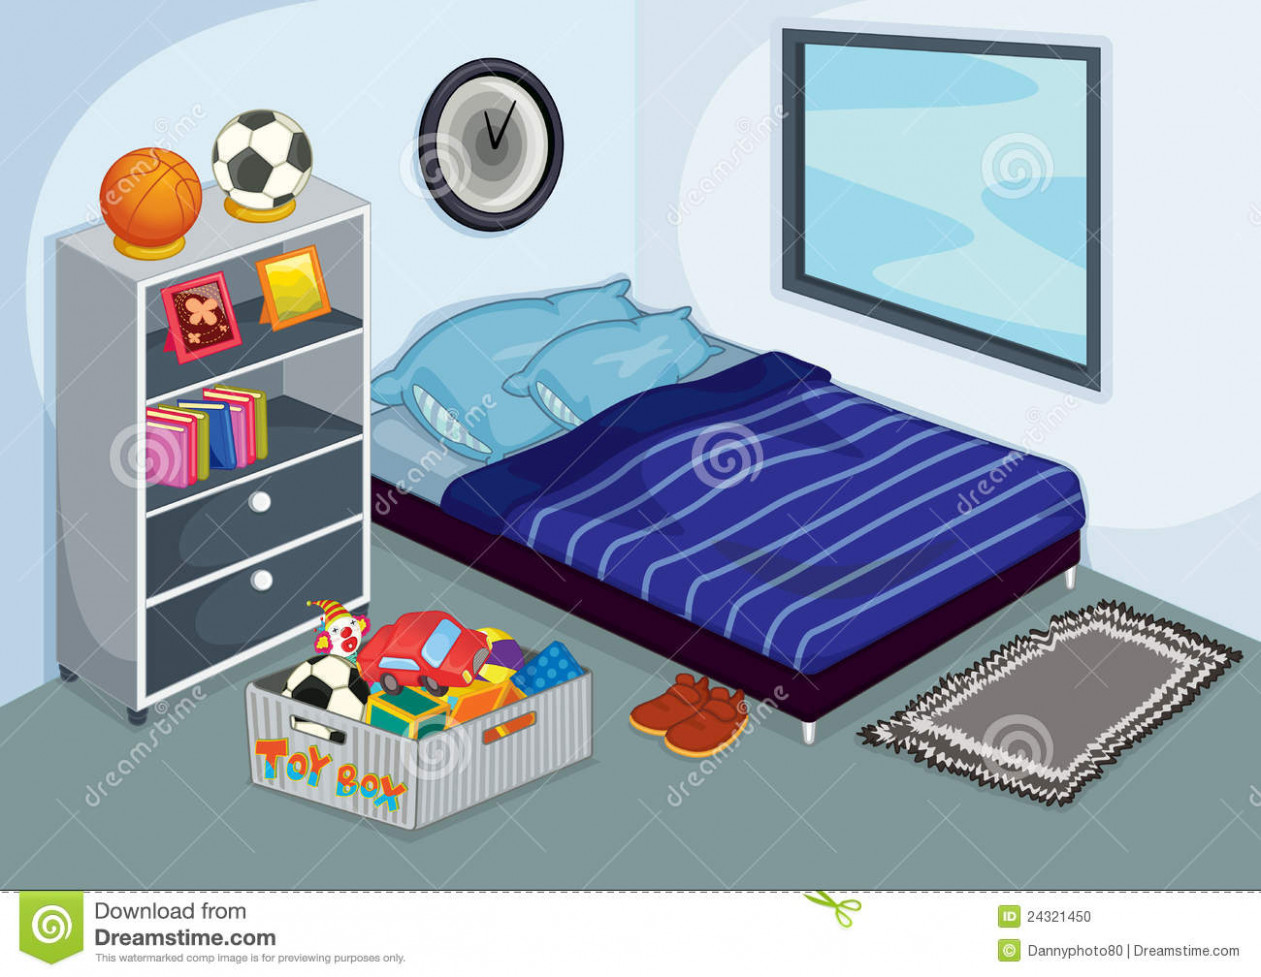 Bed childrens free on. Bedroom clipart children's